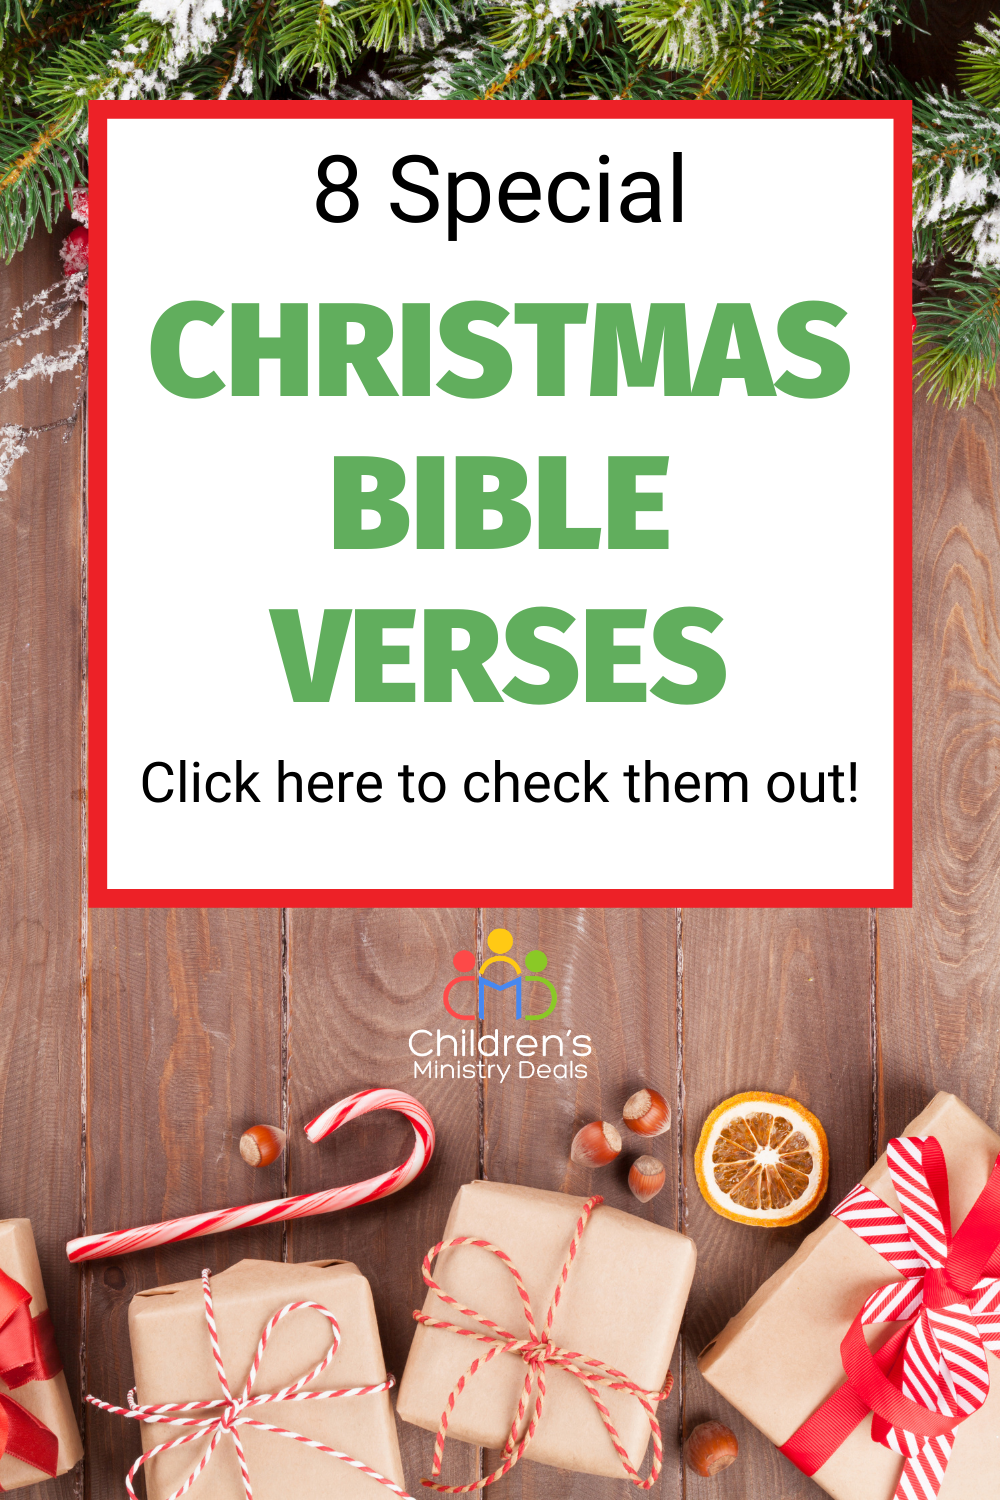 8 Special Christmas Bible Verses for Sunday School Lessons